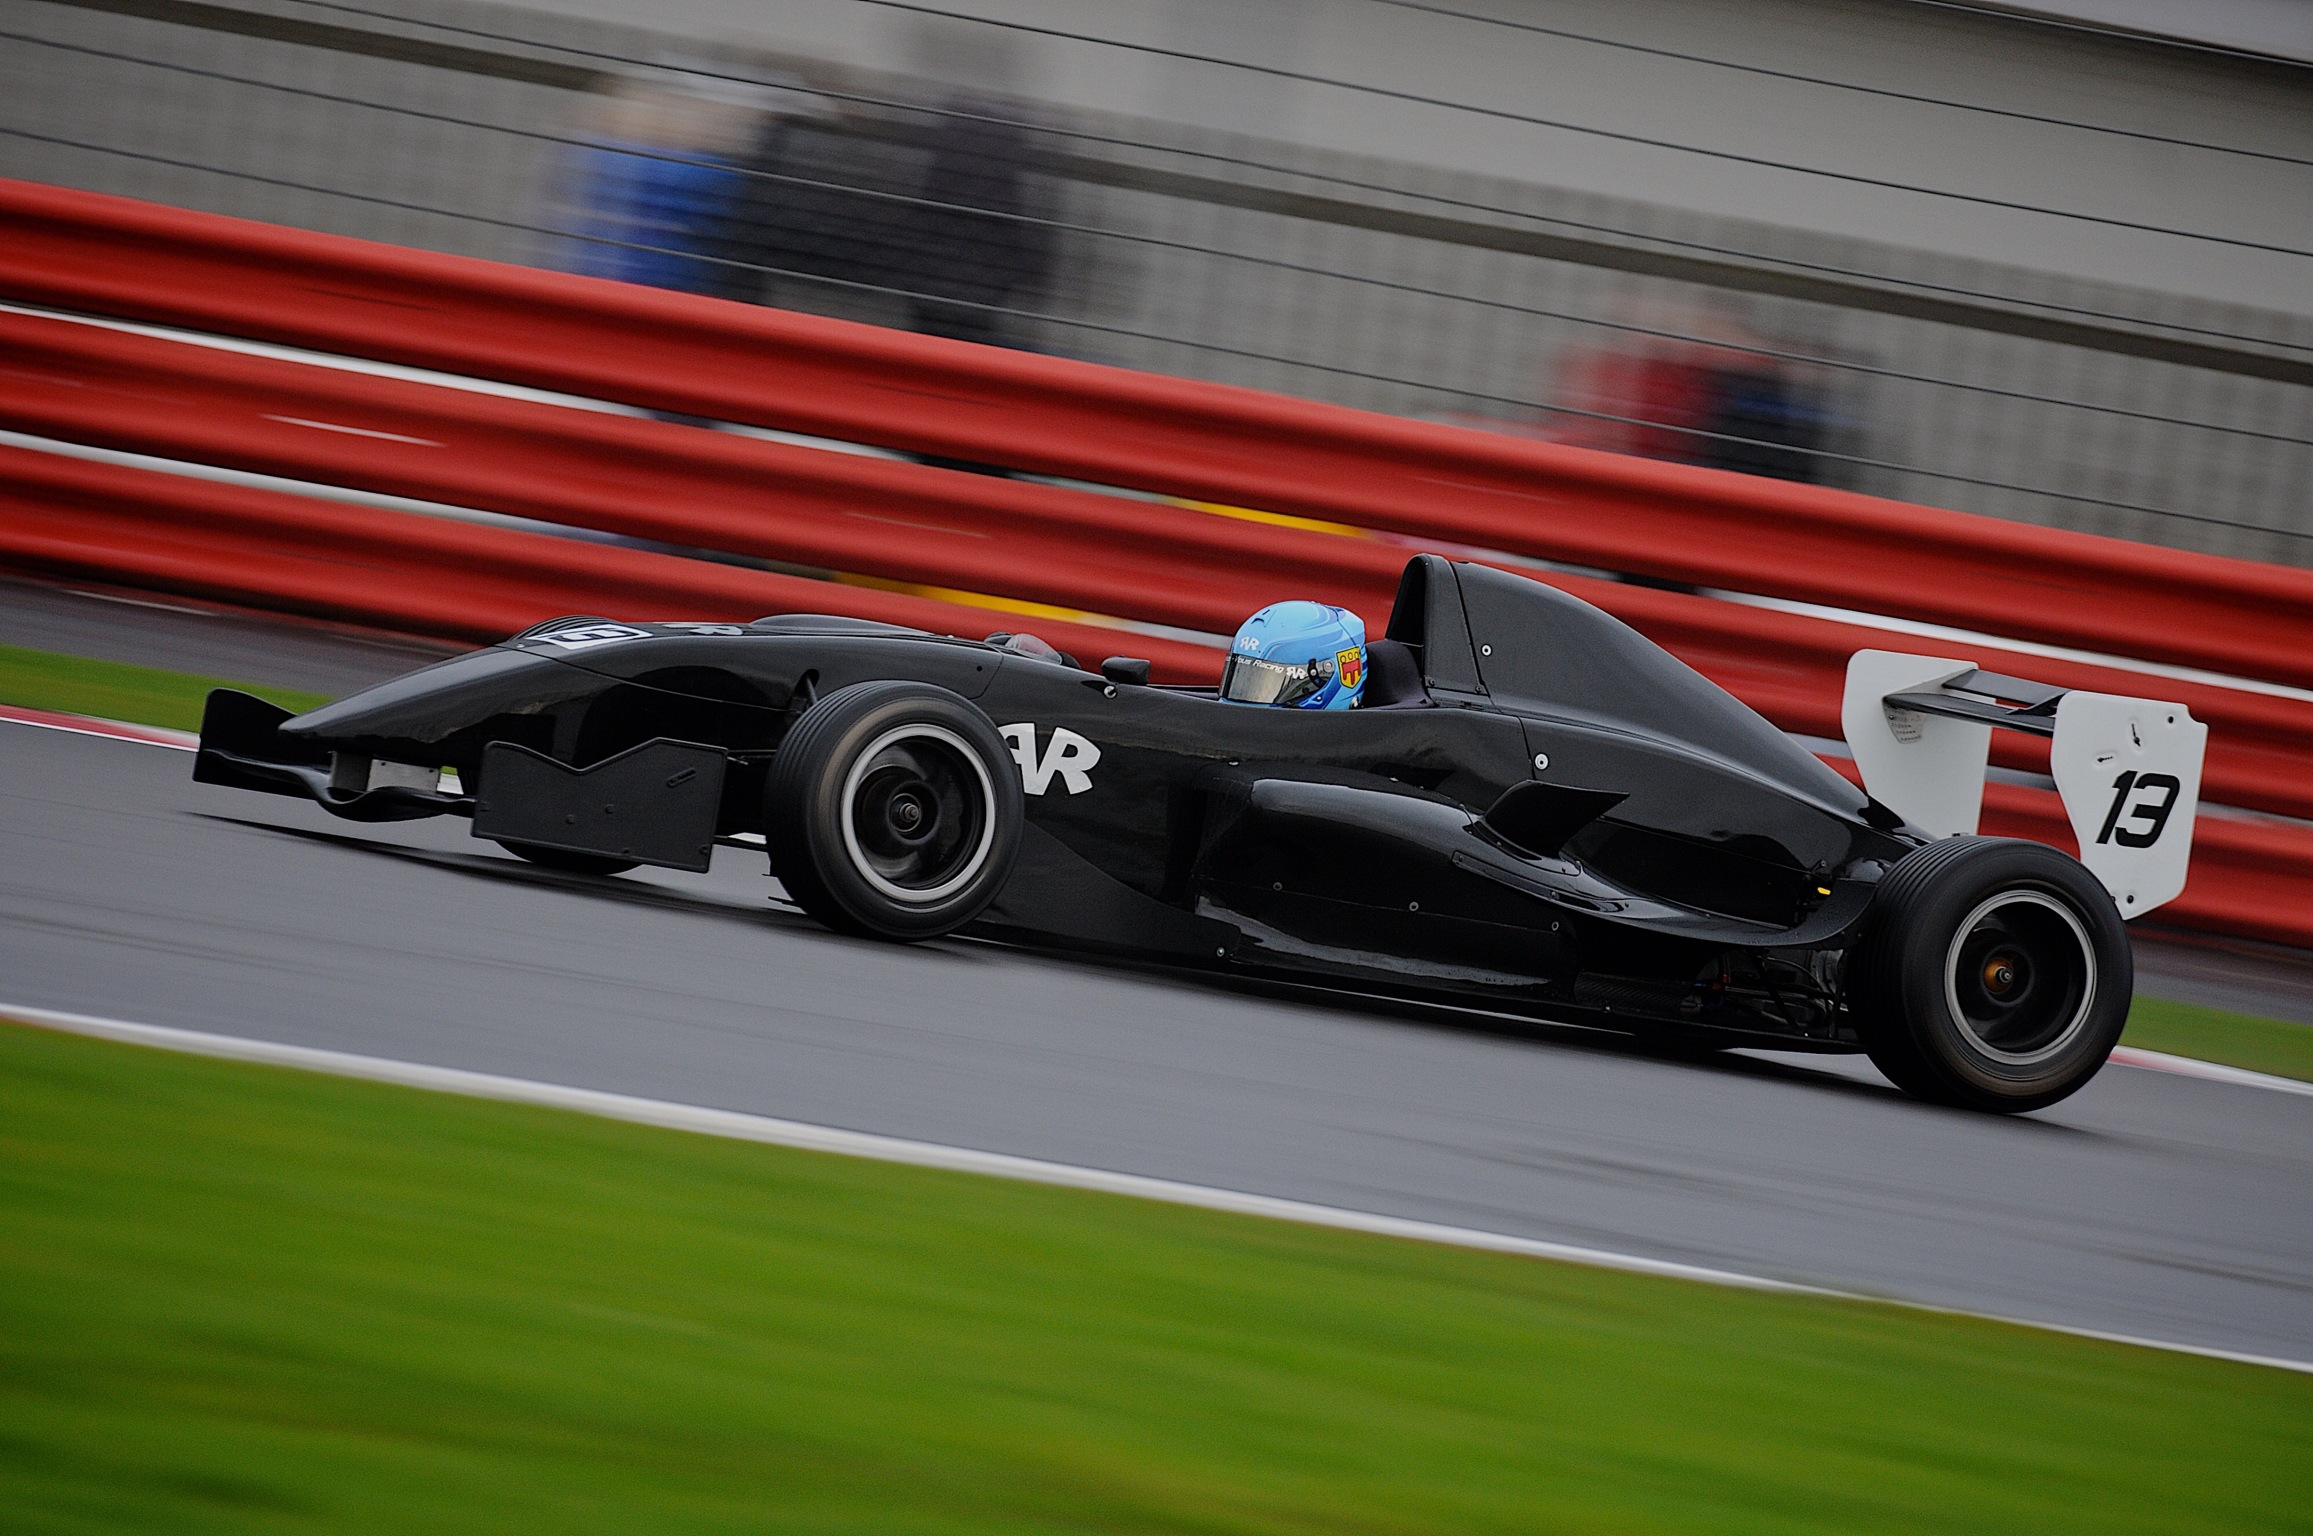 Formula Renault which Rendez-Vous Racing.com will race in British series single seater Junior events in 2013